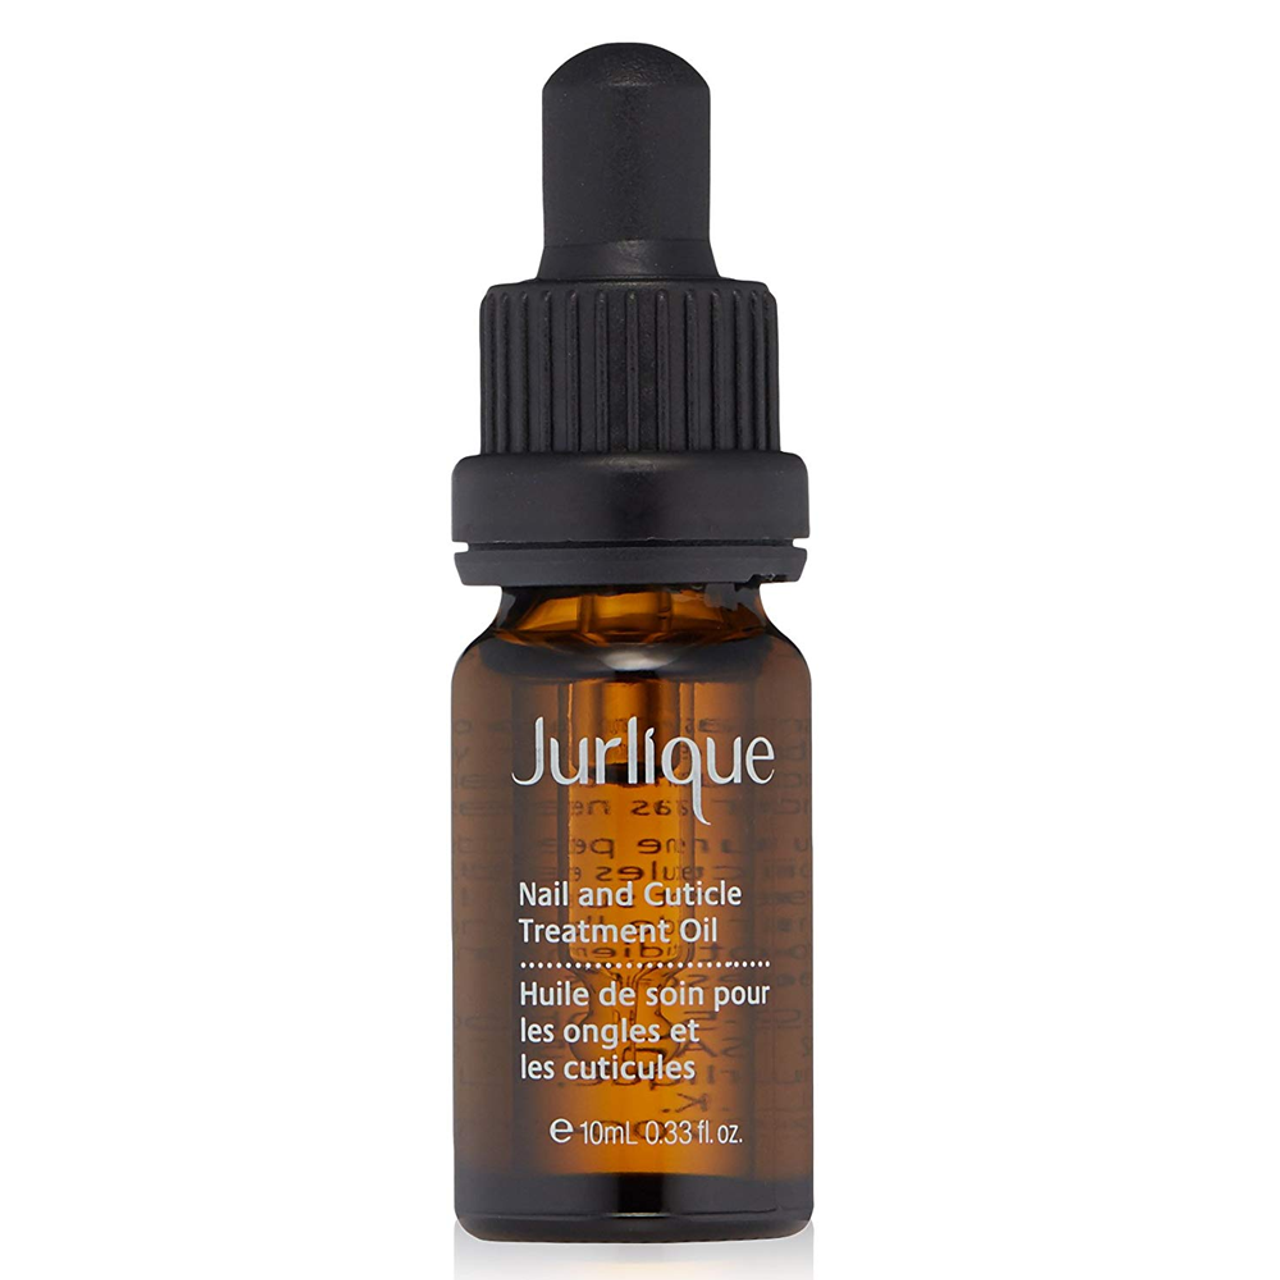 Jurlique Nail and Cuticle Treatment Oil (discontinued) BeautifiedYou.com